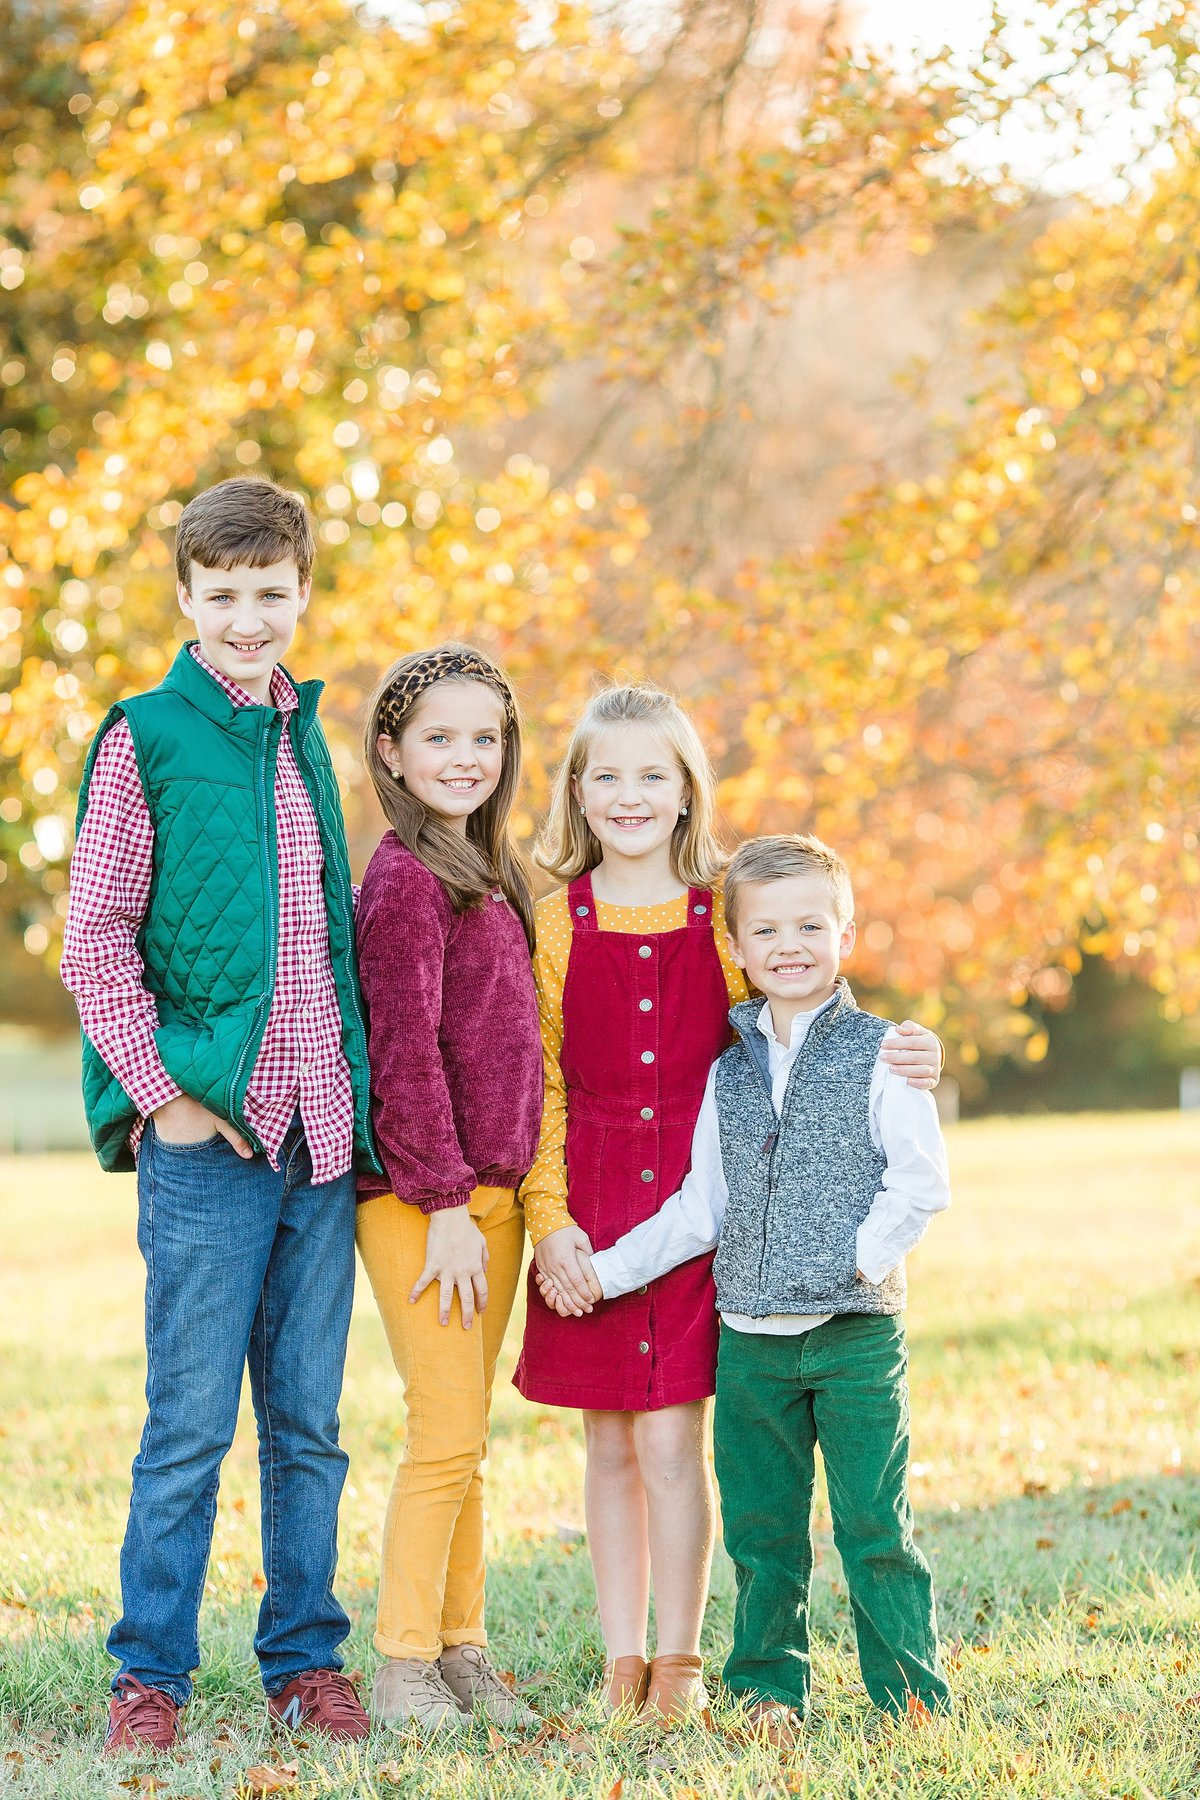 siblings-maroon-mustard-green-fall-golden-light-leaves